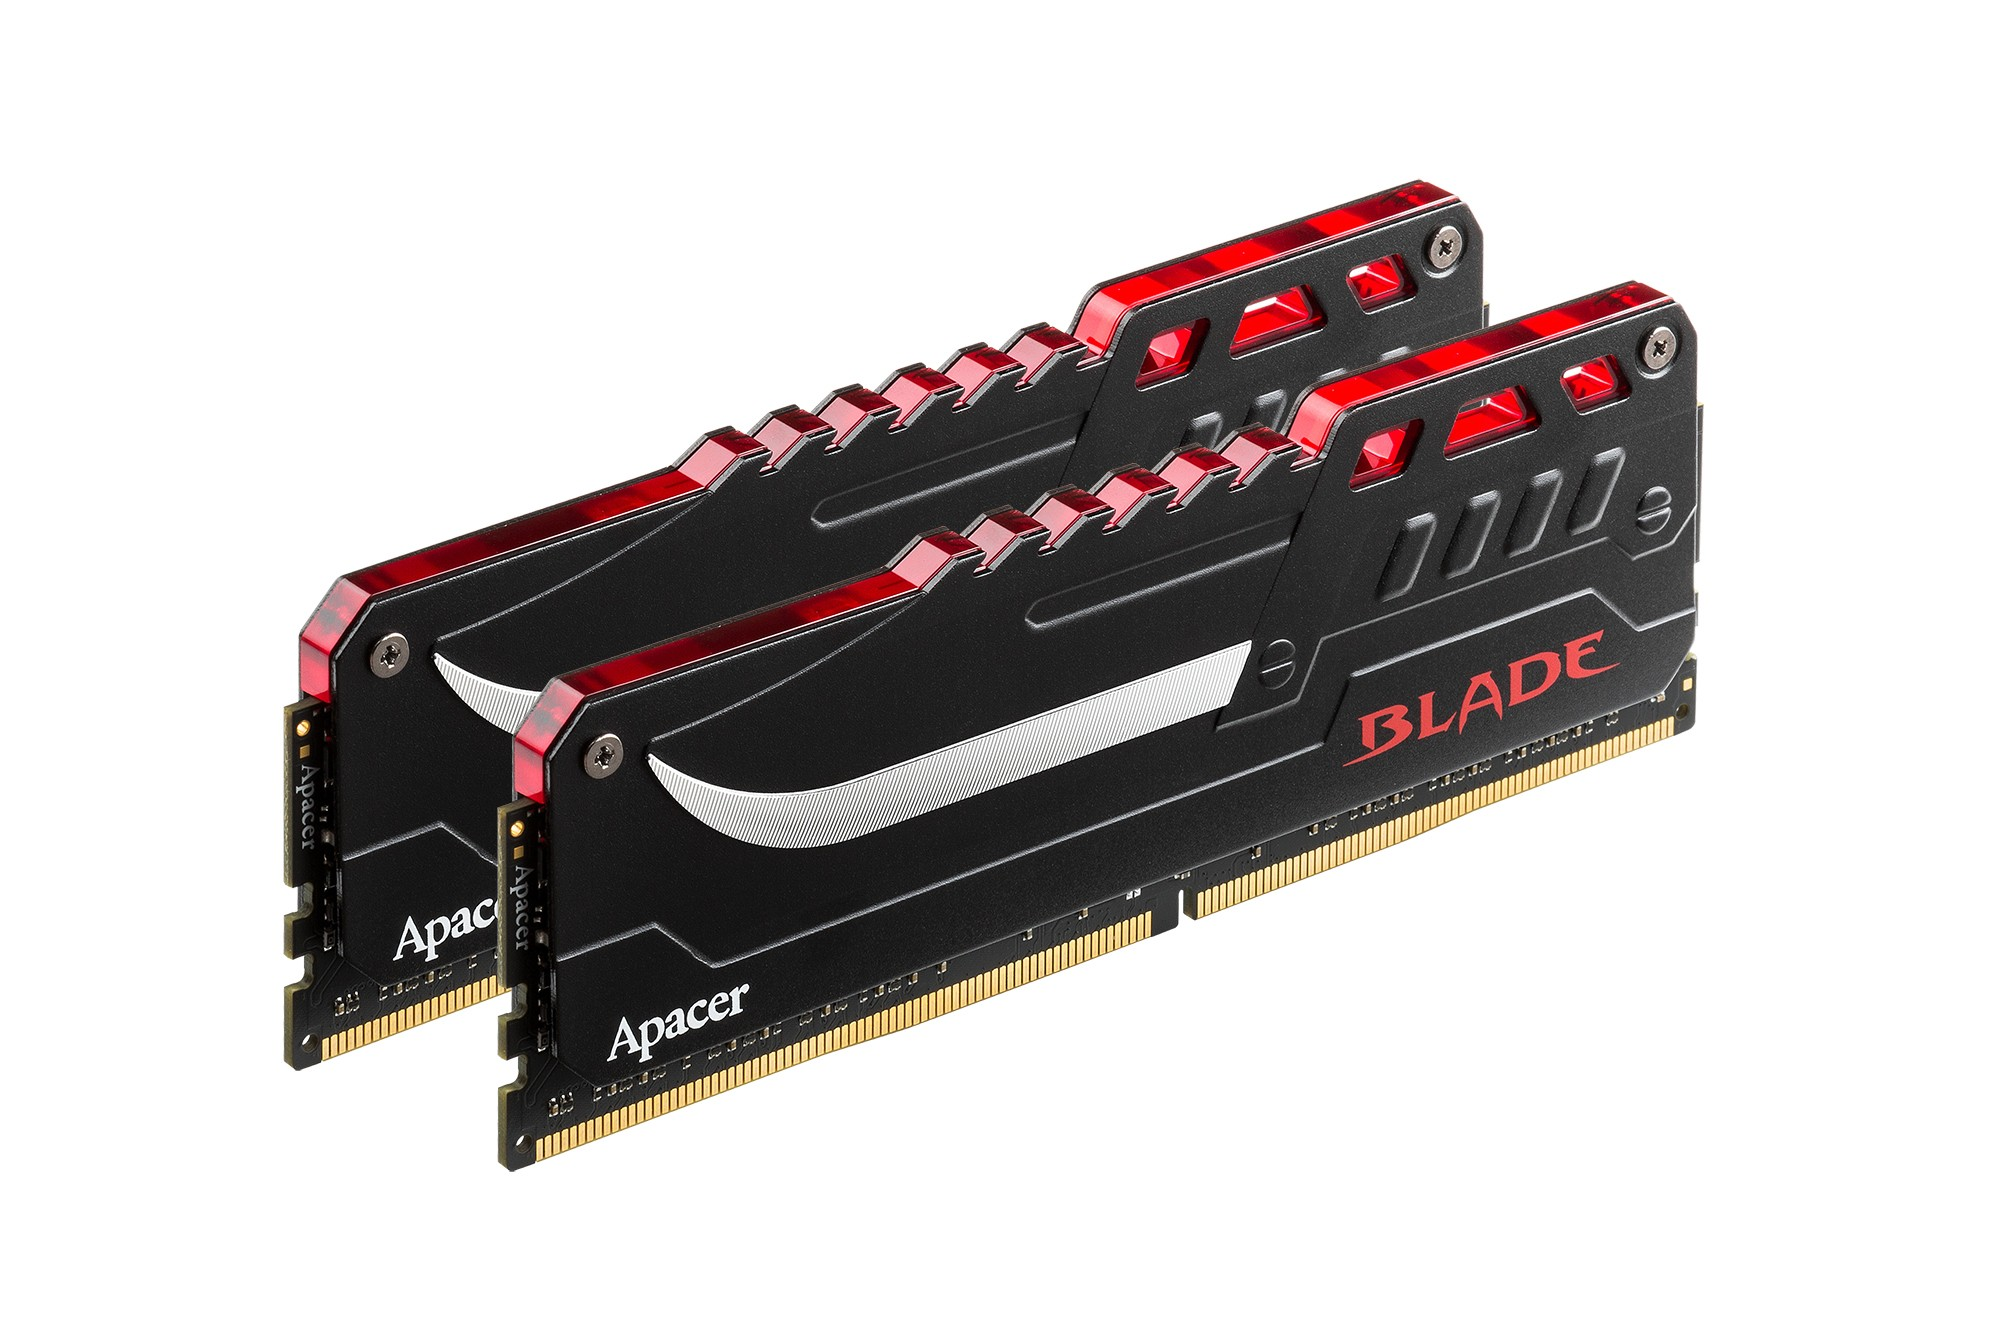 BLADE FIRE DDR4 2 Low - Apacer ra mắt Blade Fire DDR4